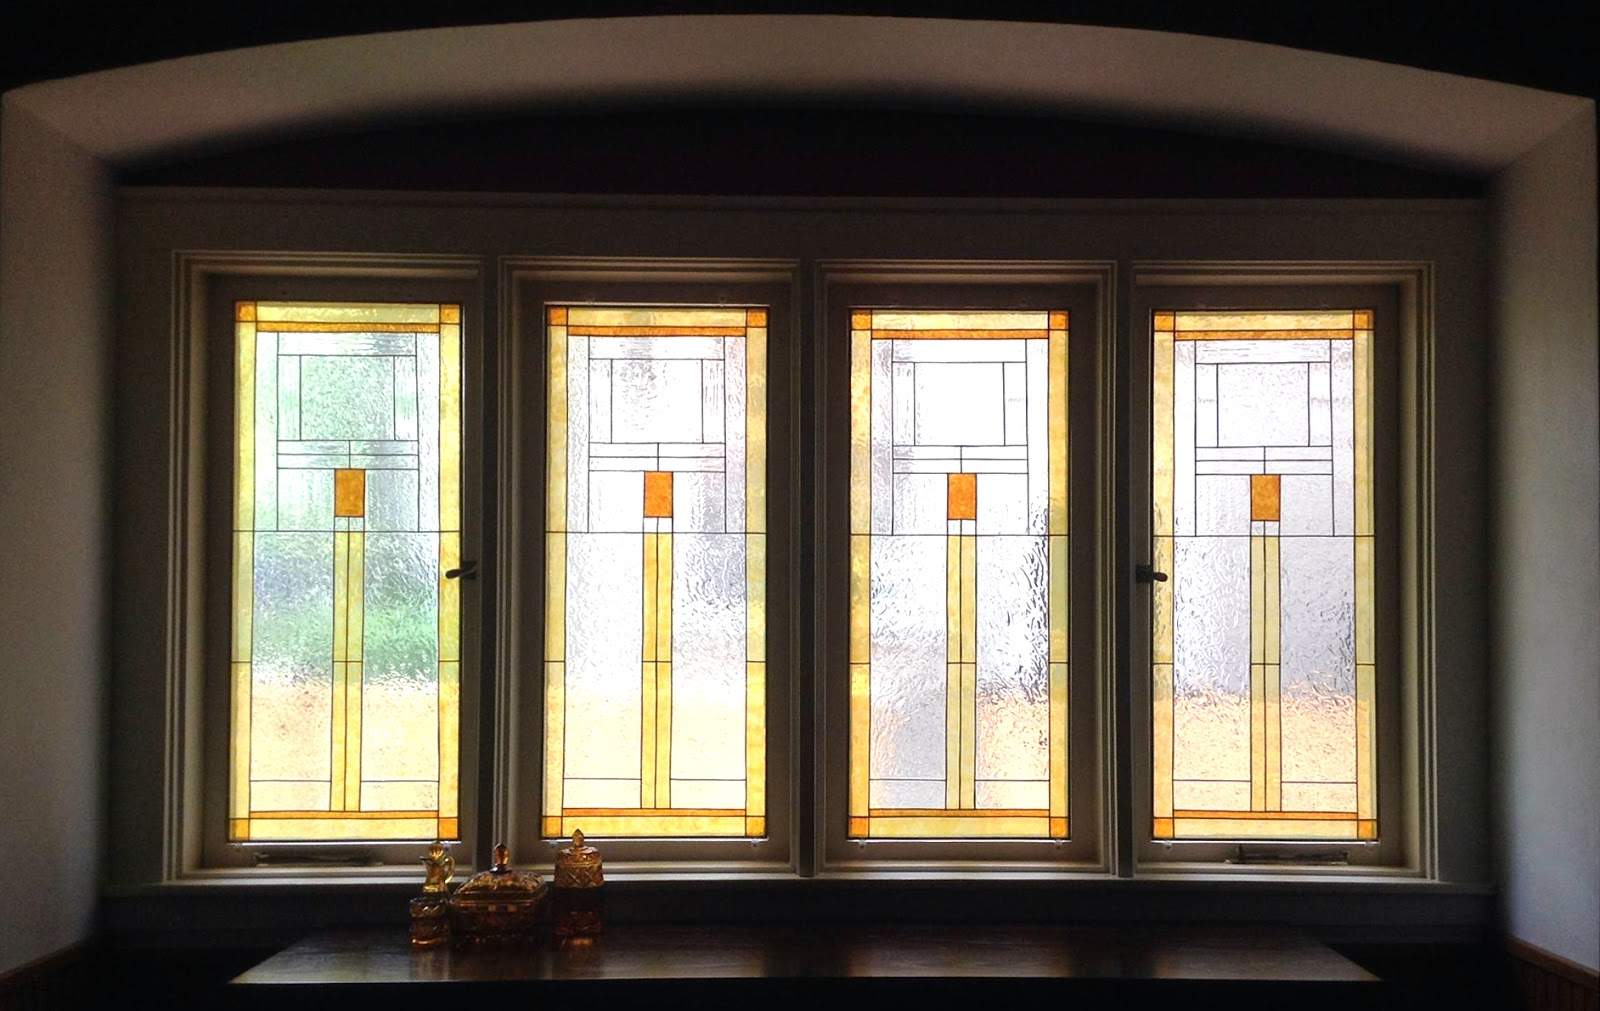 Glass Class Susan Craftsman Style Dining Room Windows